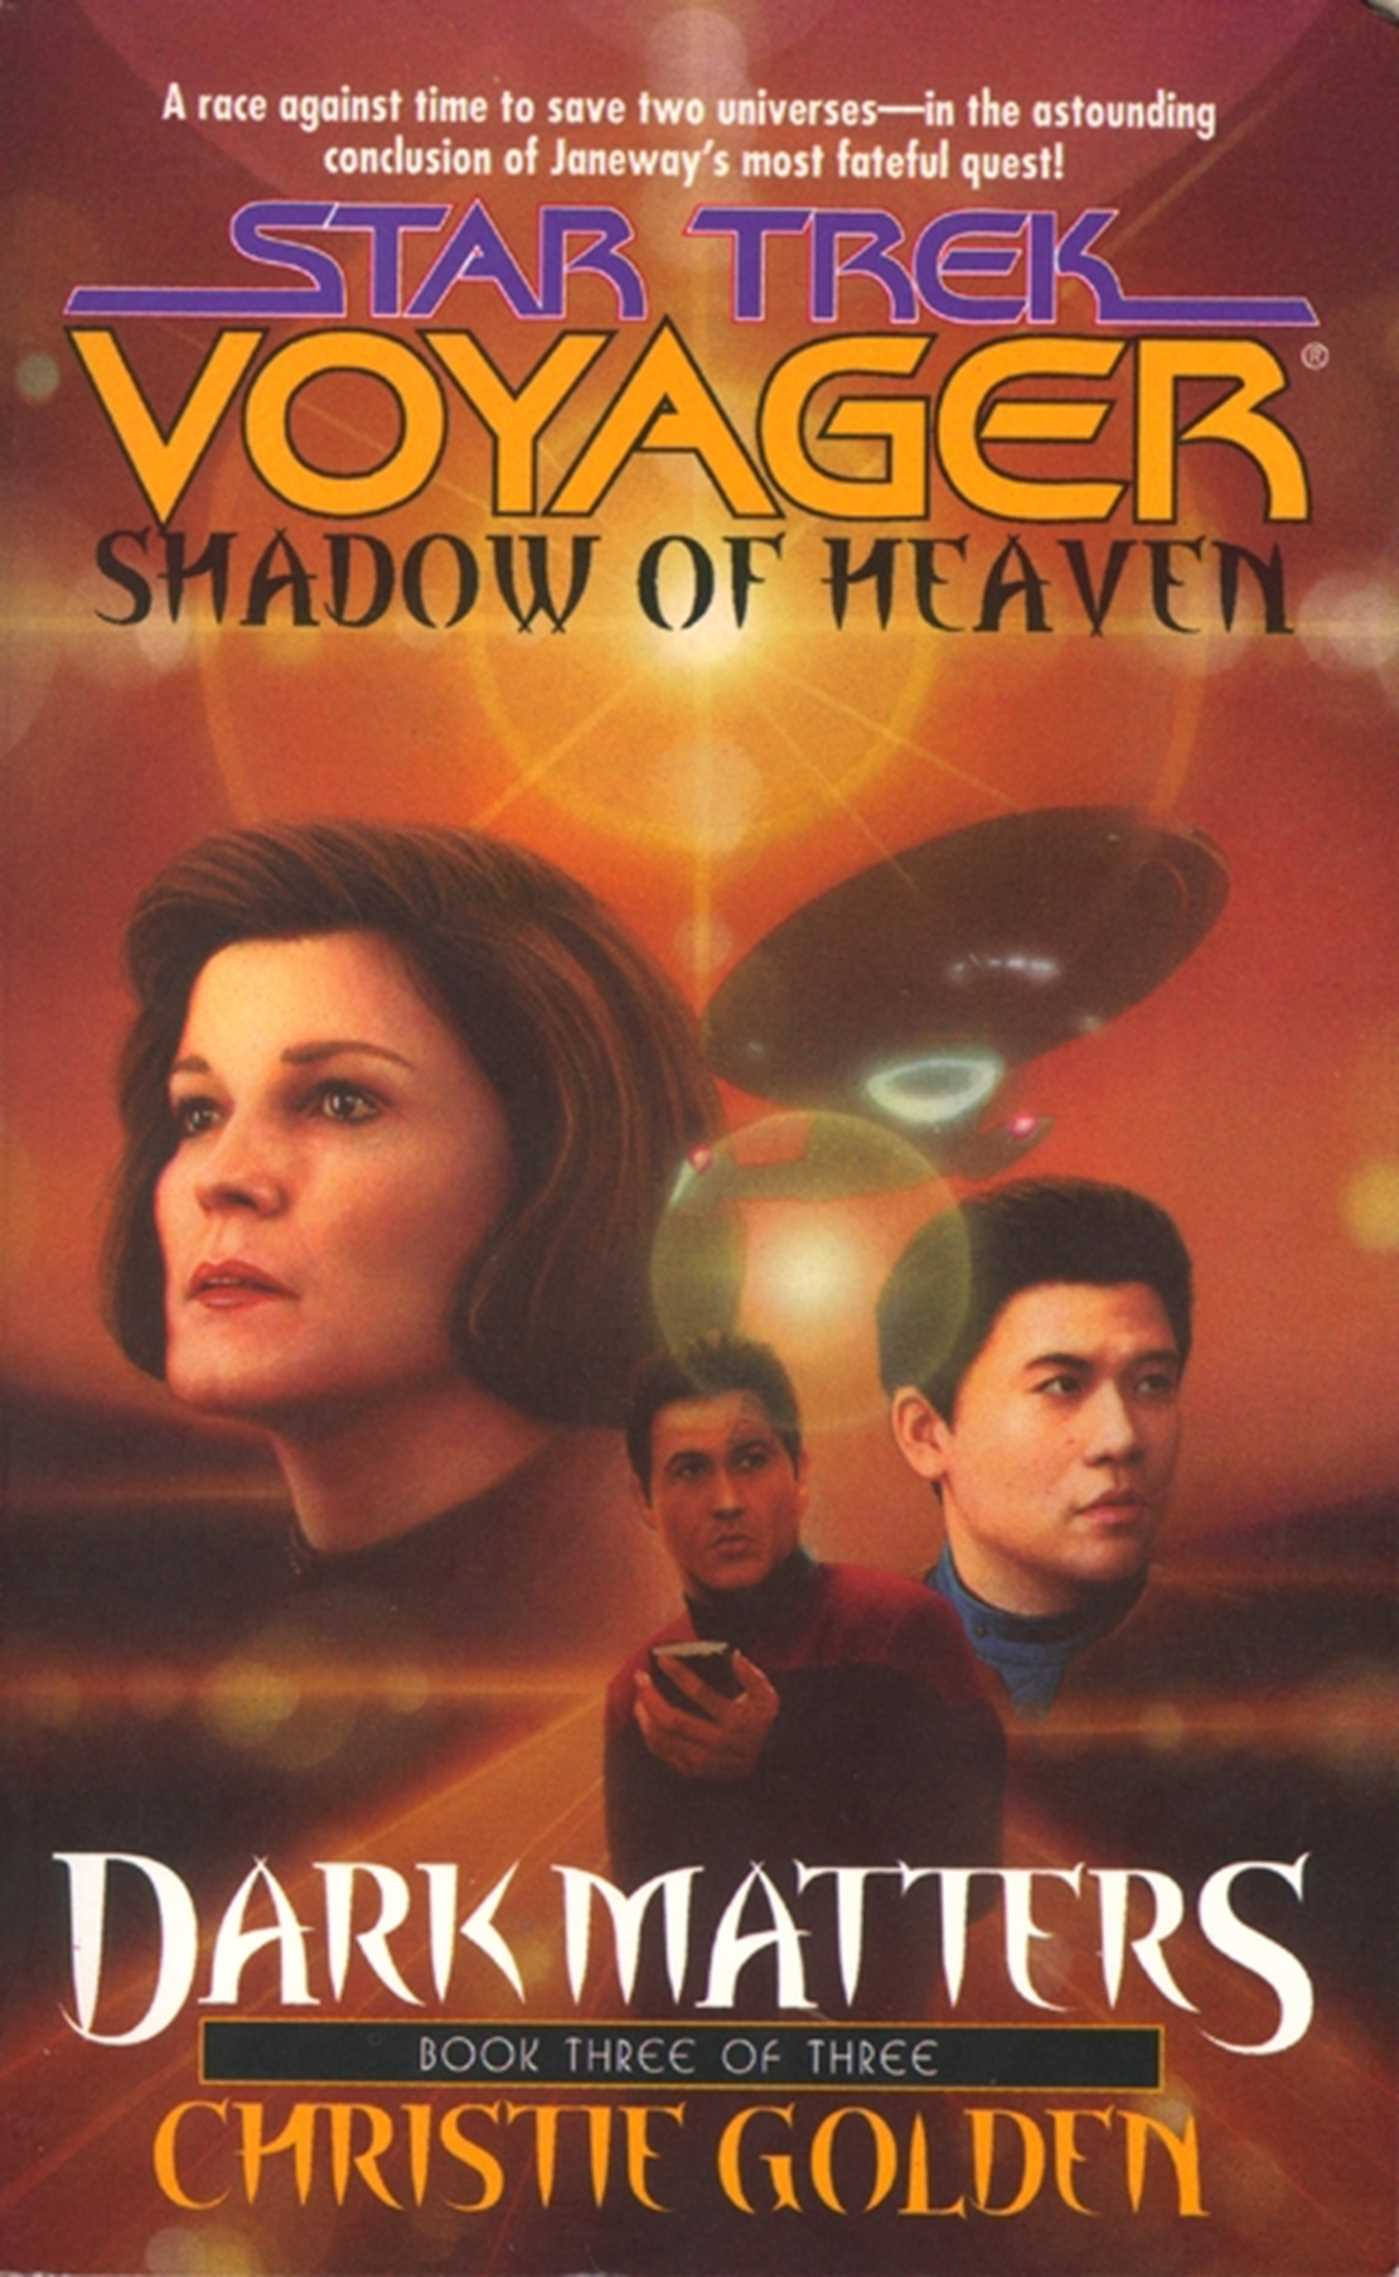 Shadow-of-heaven-9780743422376_hr